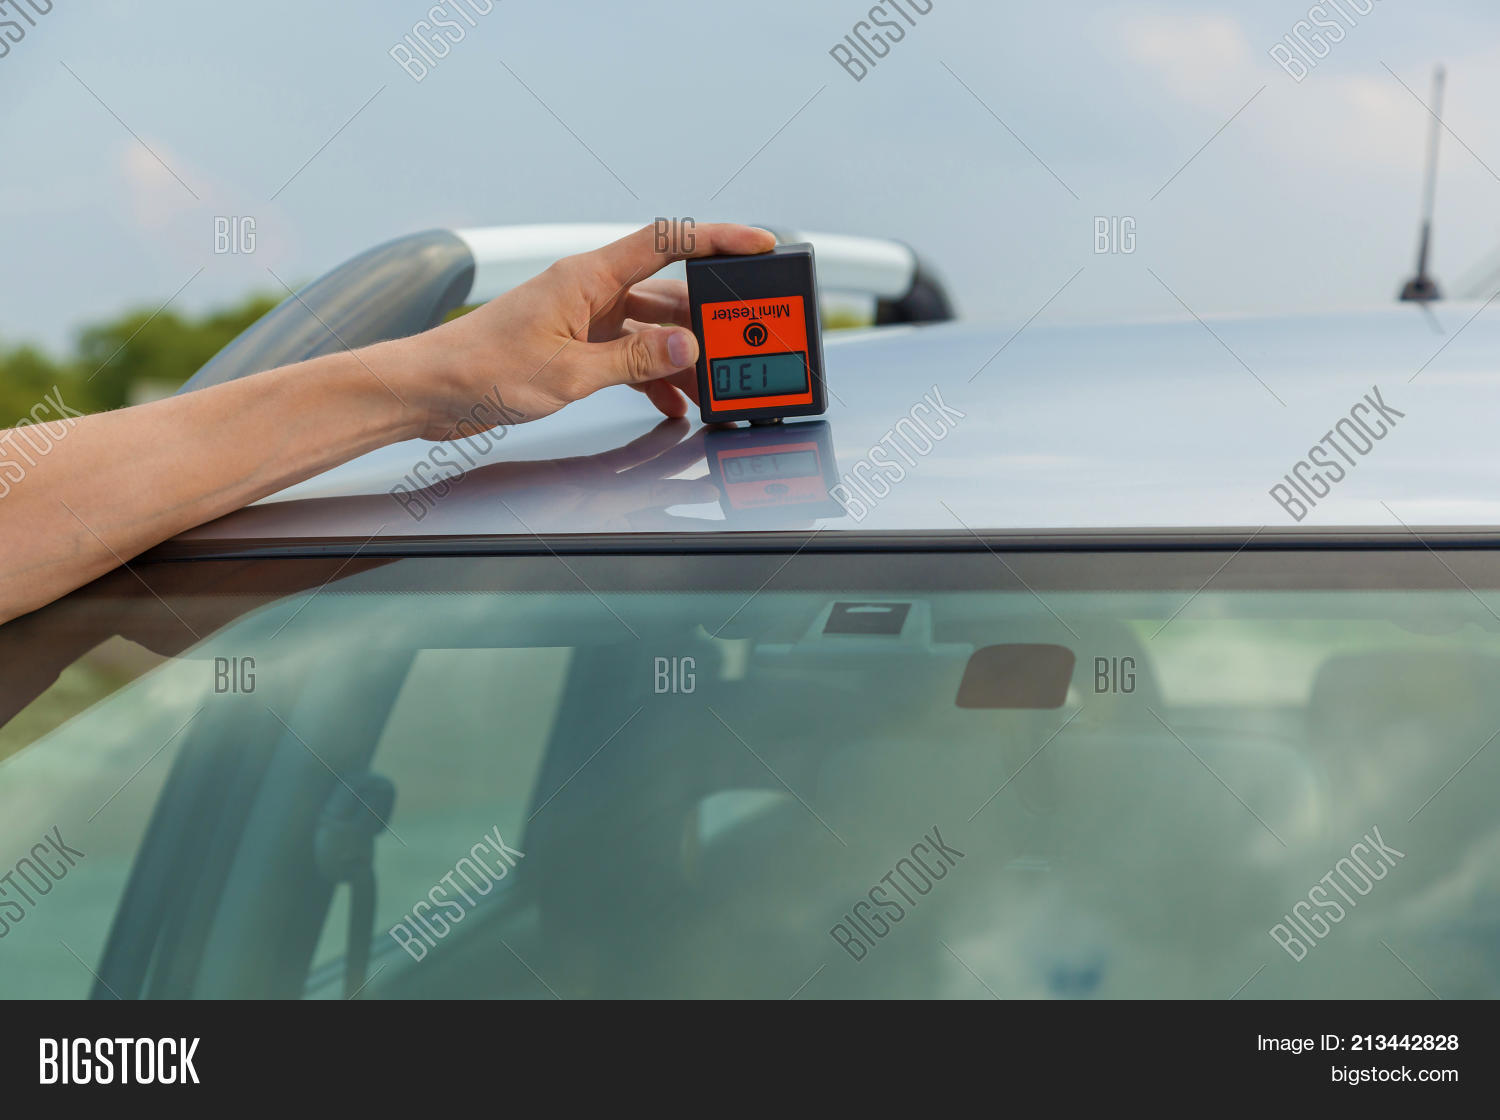 Checking Body Roof Car Image & Photo (Free Trial) | Bigstock